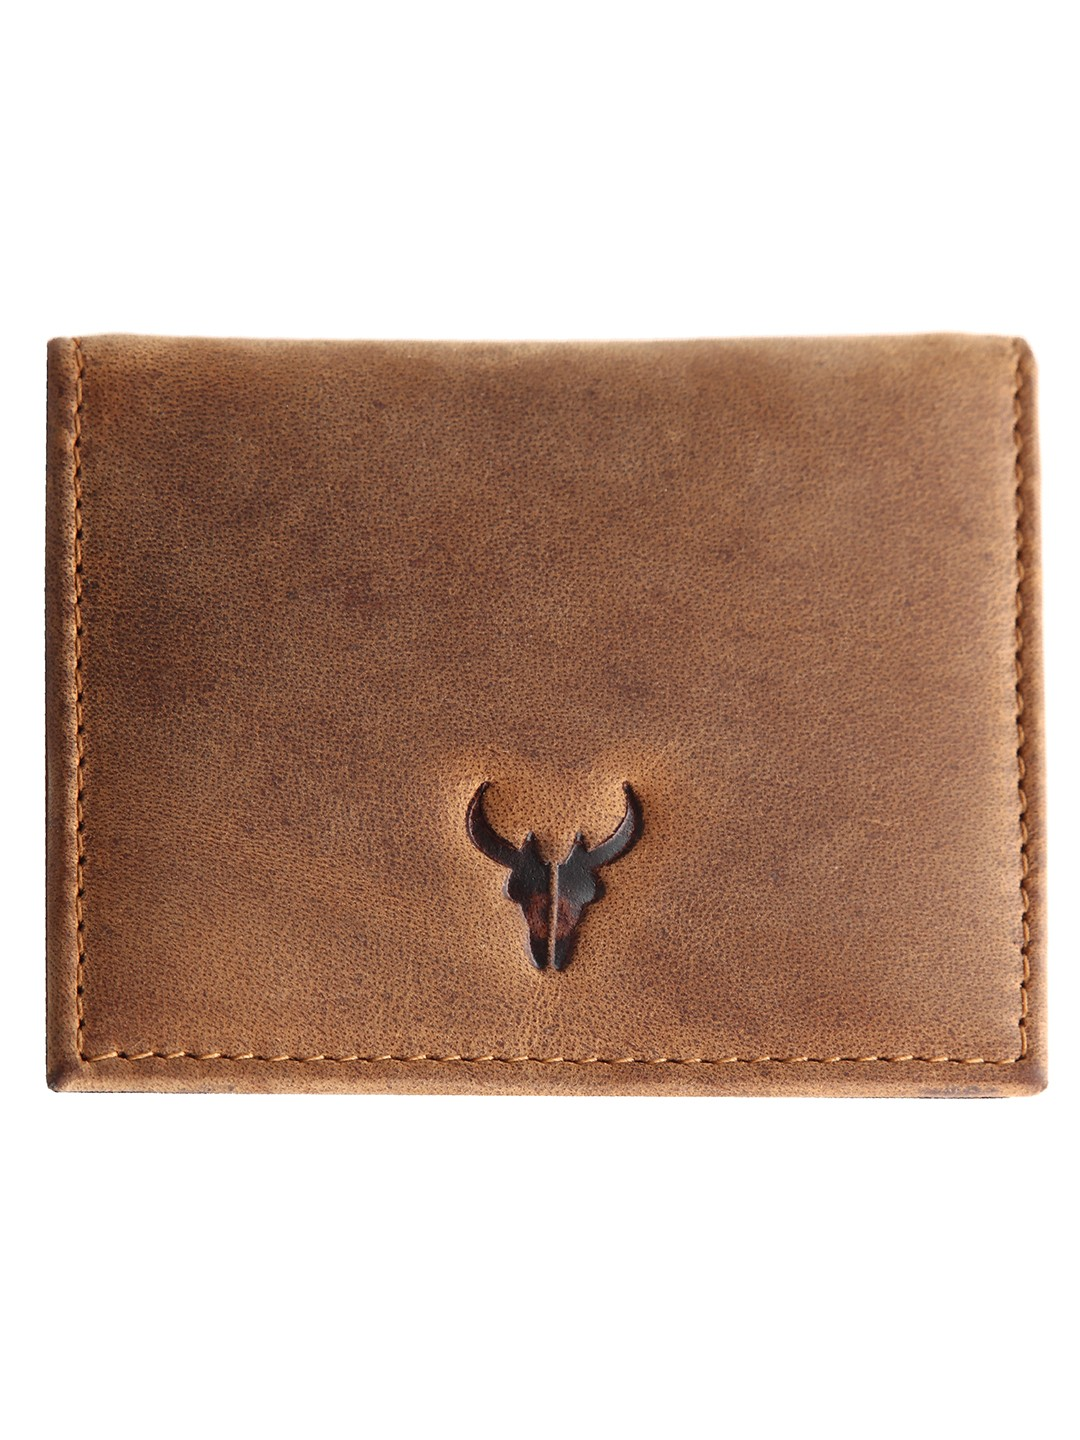 Napa Hide | Napa Hide RFID Protected Genuine High Quality Leather Tan Wallet for Men